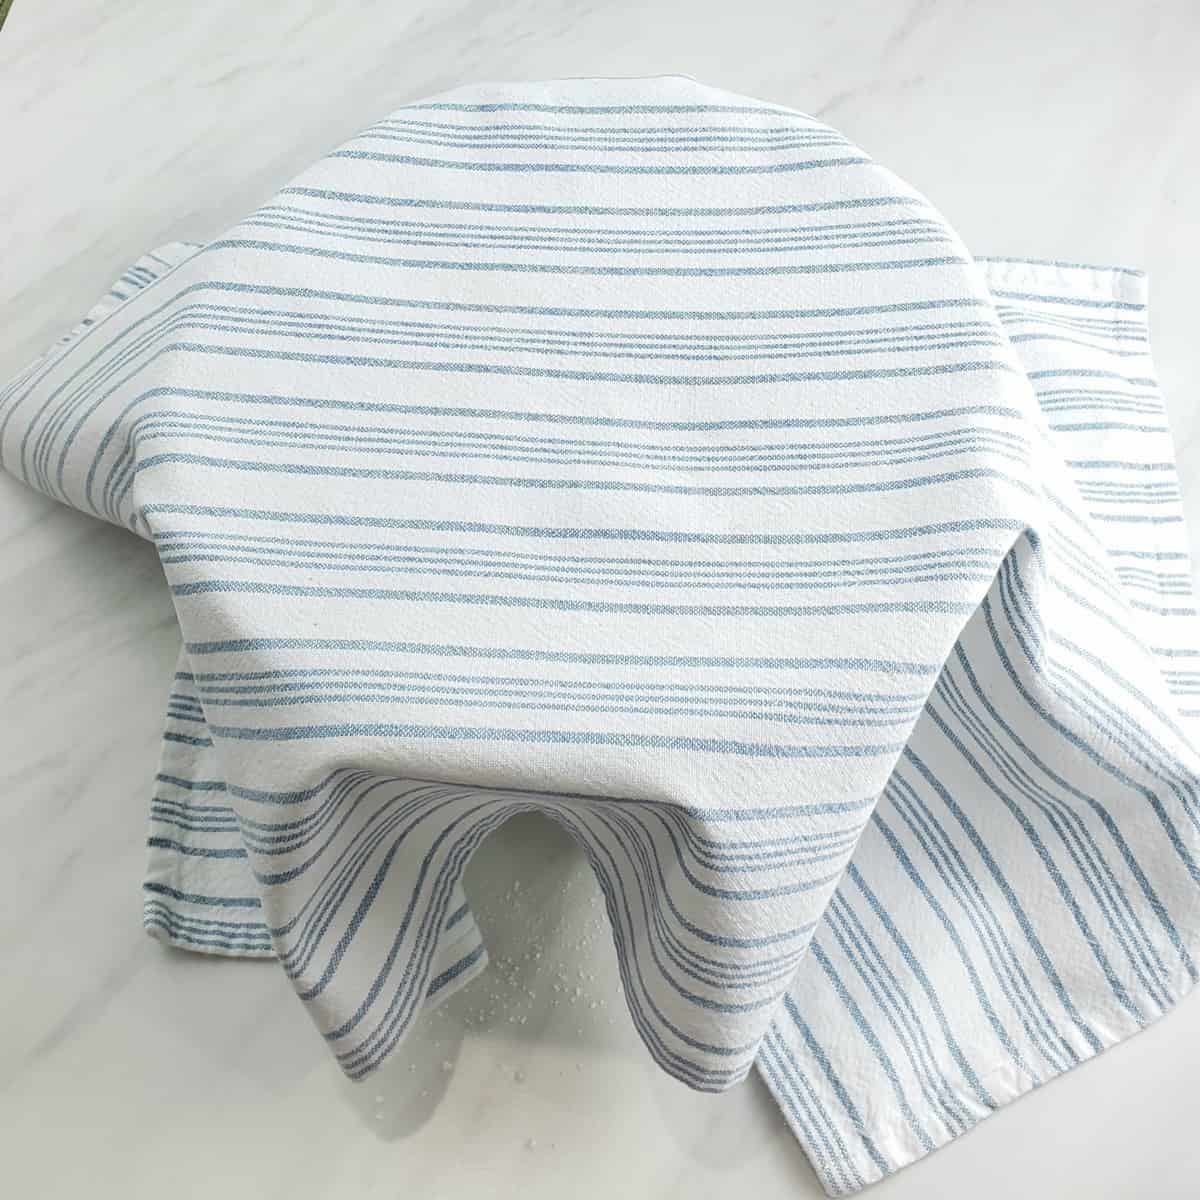 Blue and white towel draped over a bowl on marble surface